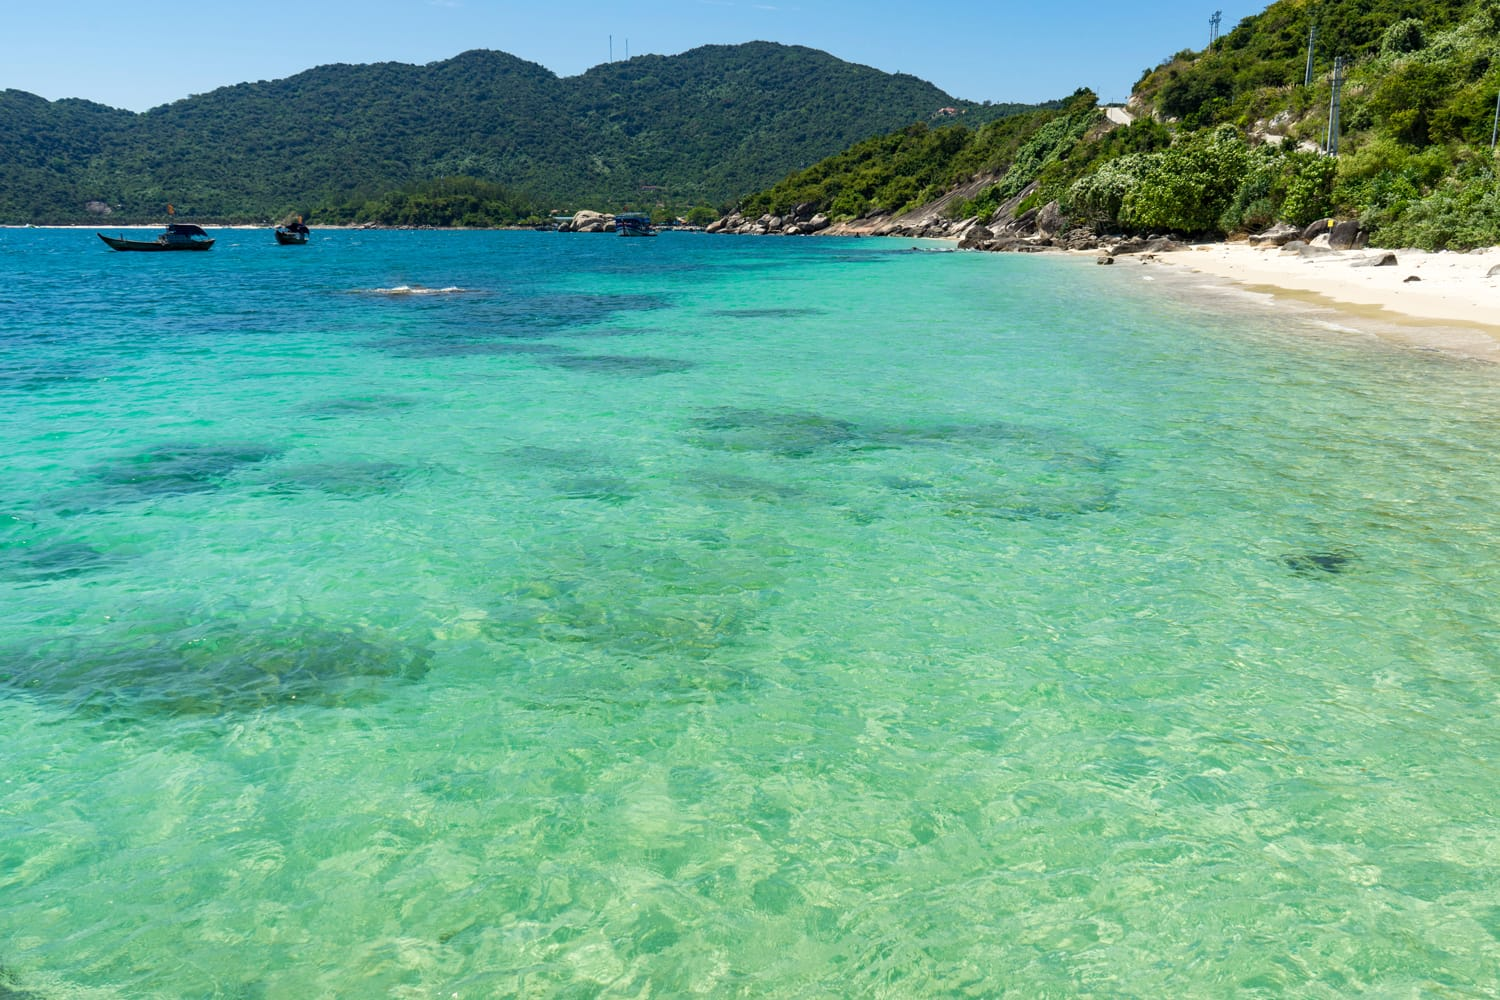 Cham Island in the archipelago of Ku Lao Cham in Vietnam with its beautiful beaches, landscapes and wildlife.